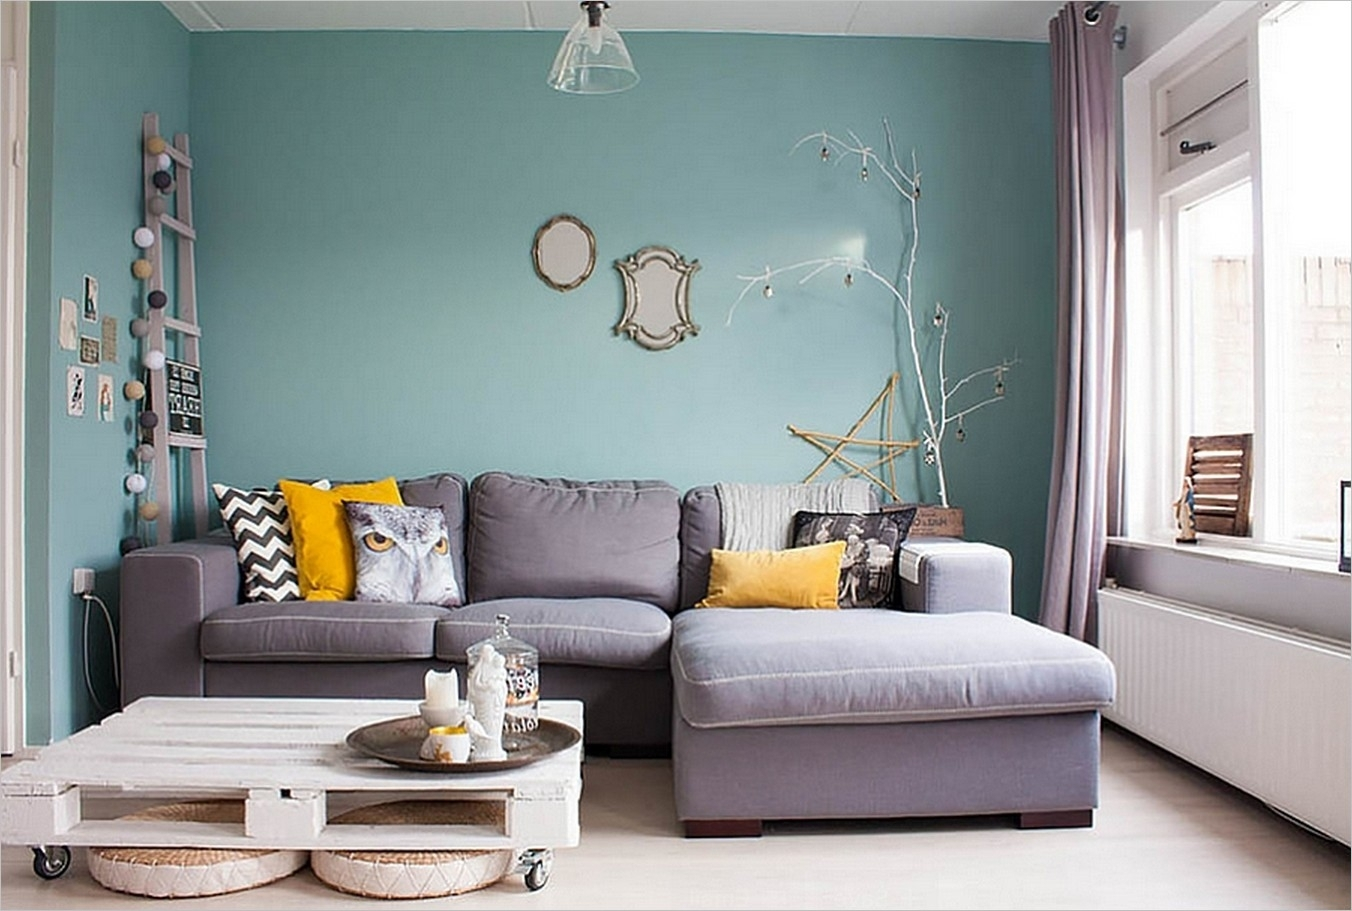 2017 Color Trends For Your Home Interior, According To Paint Within Current Light Blue Wall Accents (View 4 of 15)